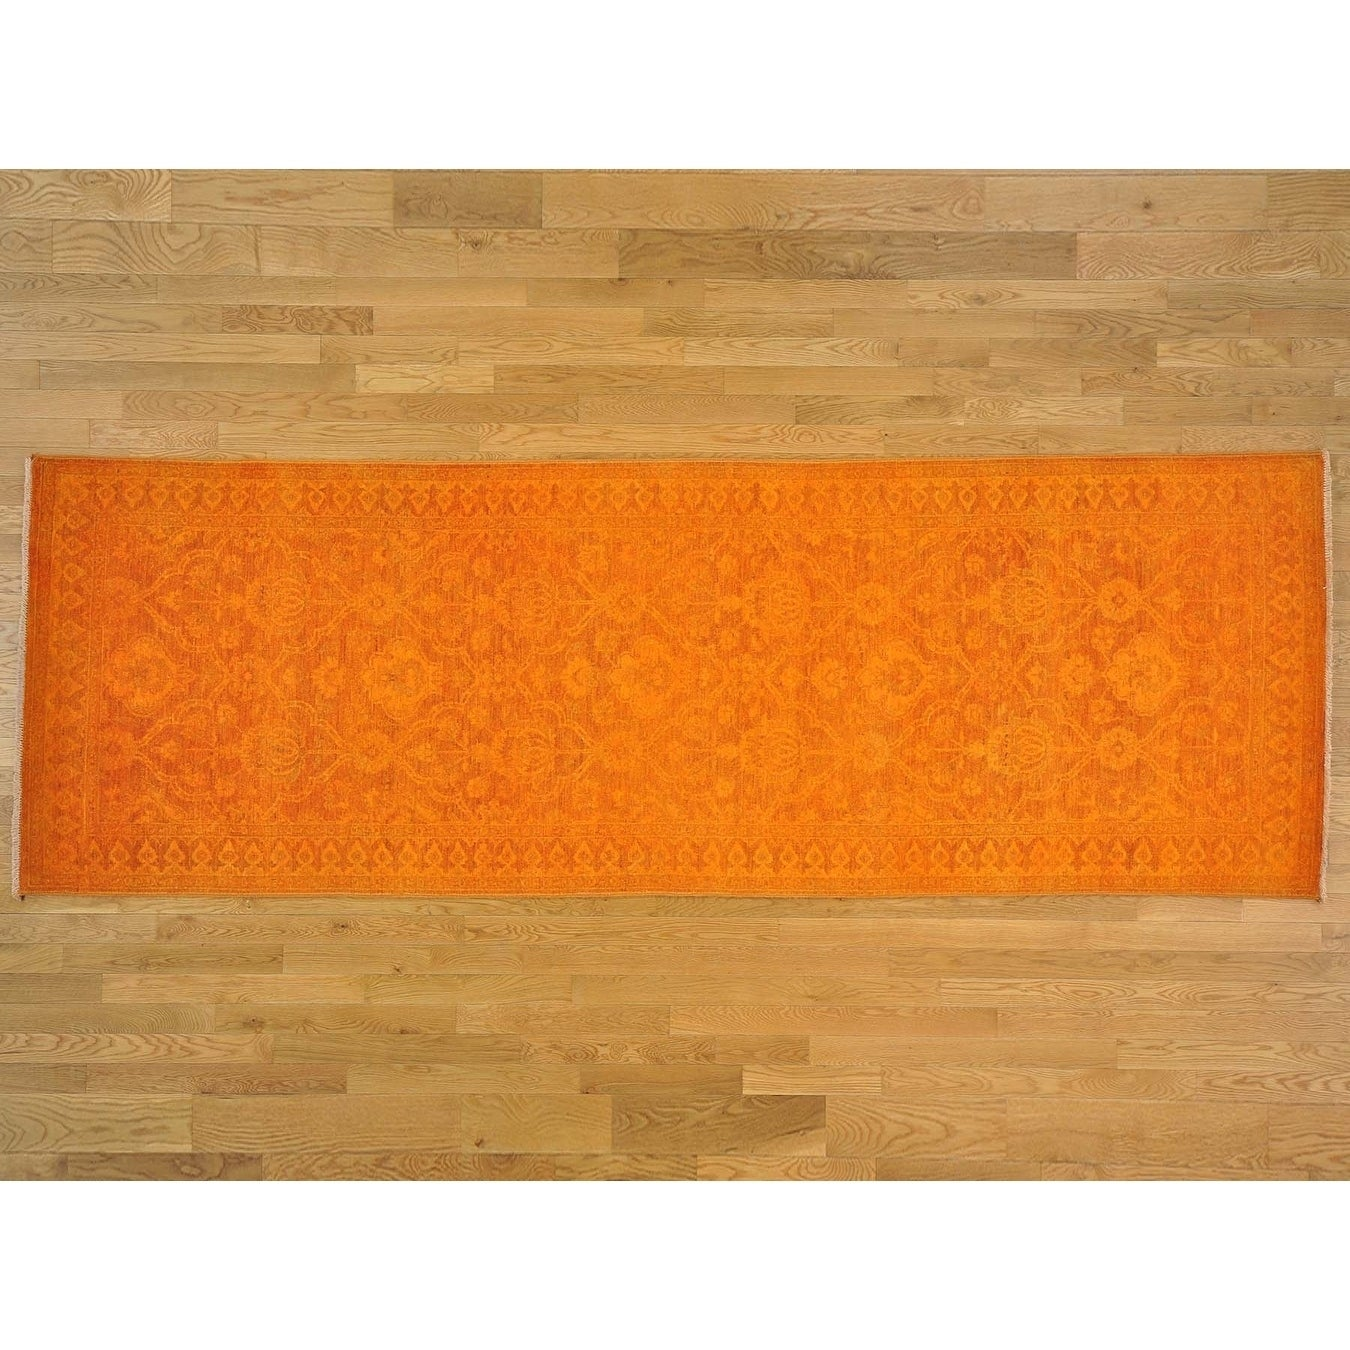 Hand Knotted Orange Oushak And Peshawar with Wool Oriental Rug - 41 x 121